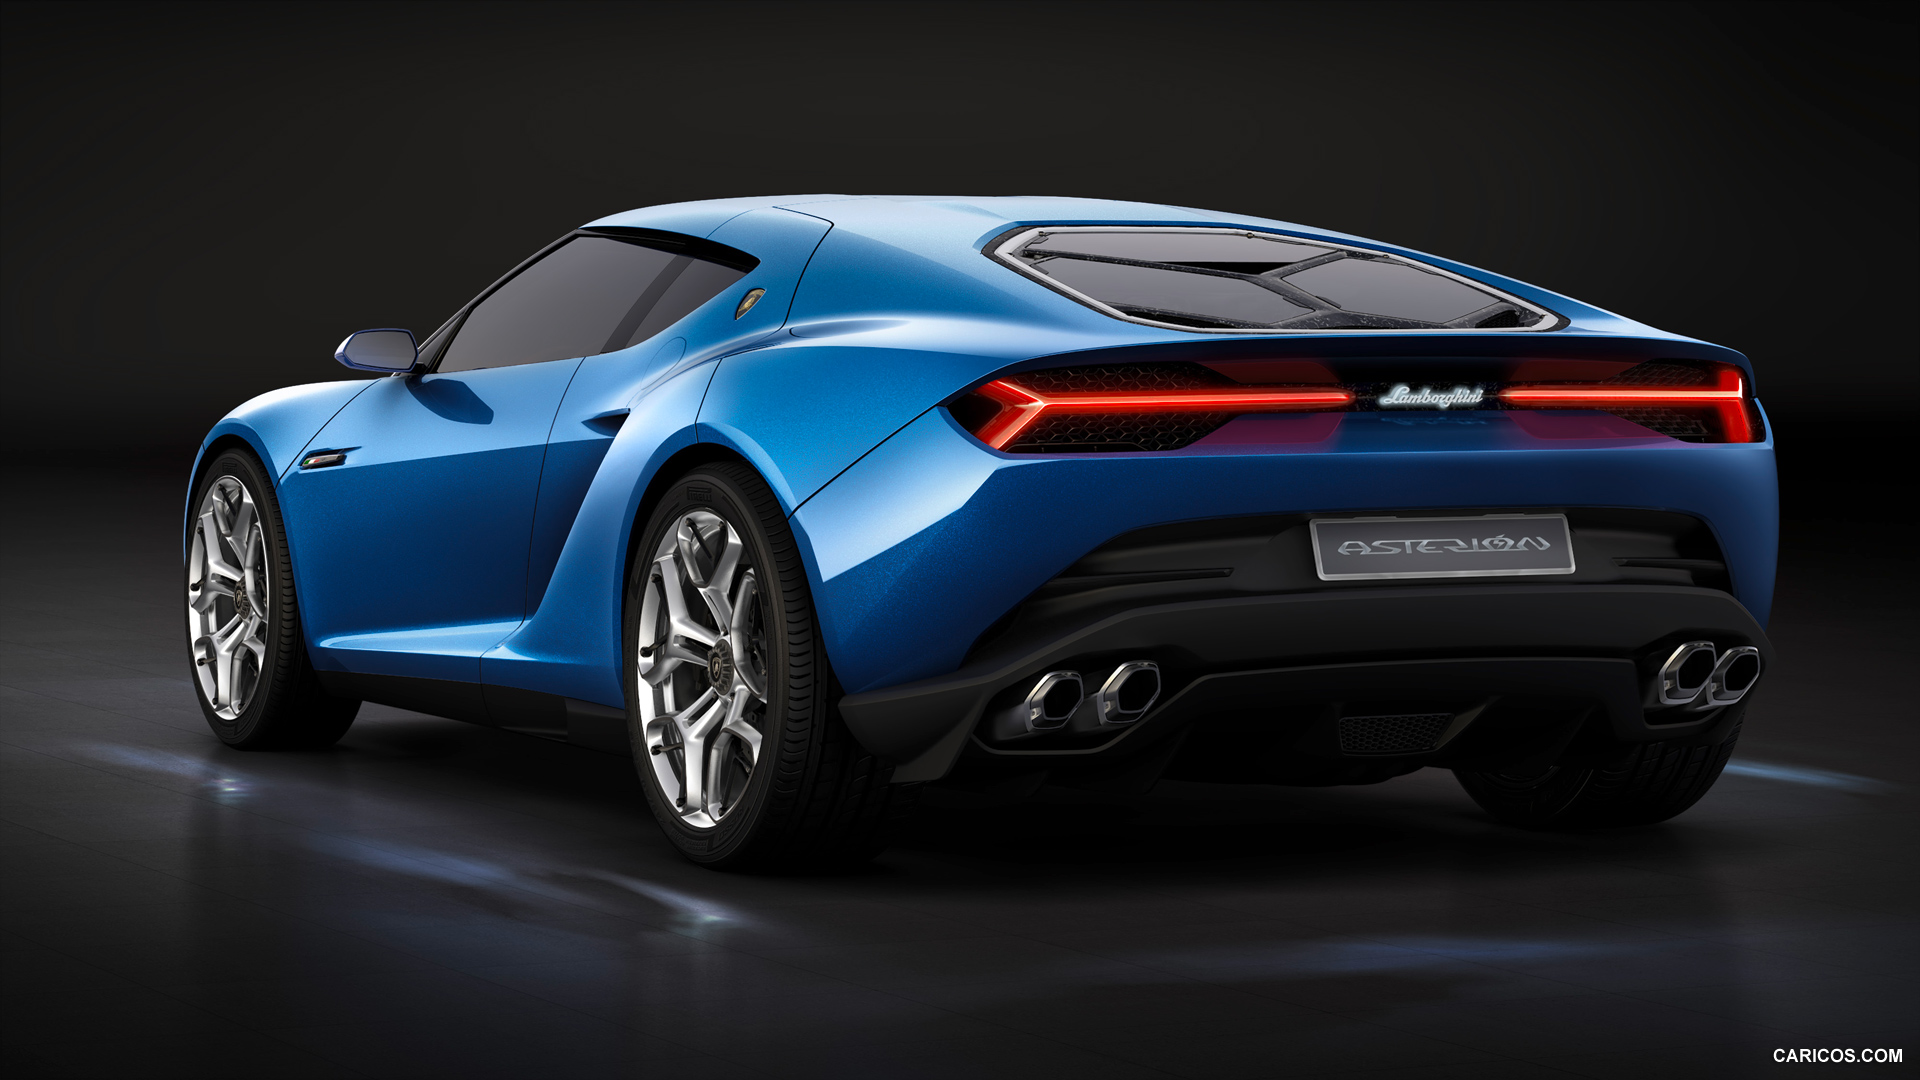 Lamborghini Asterion LPI 910-4 photo 130170